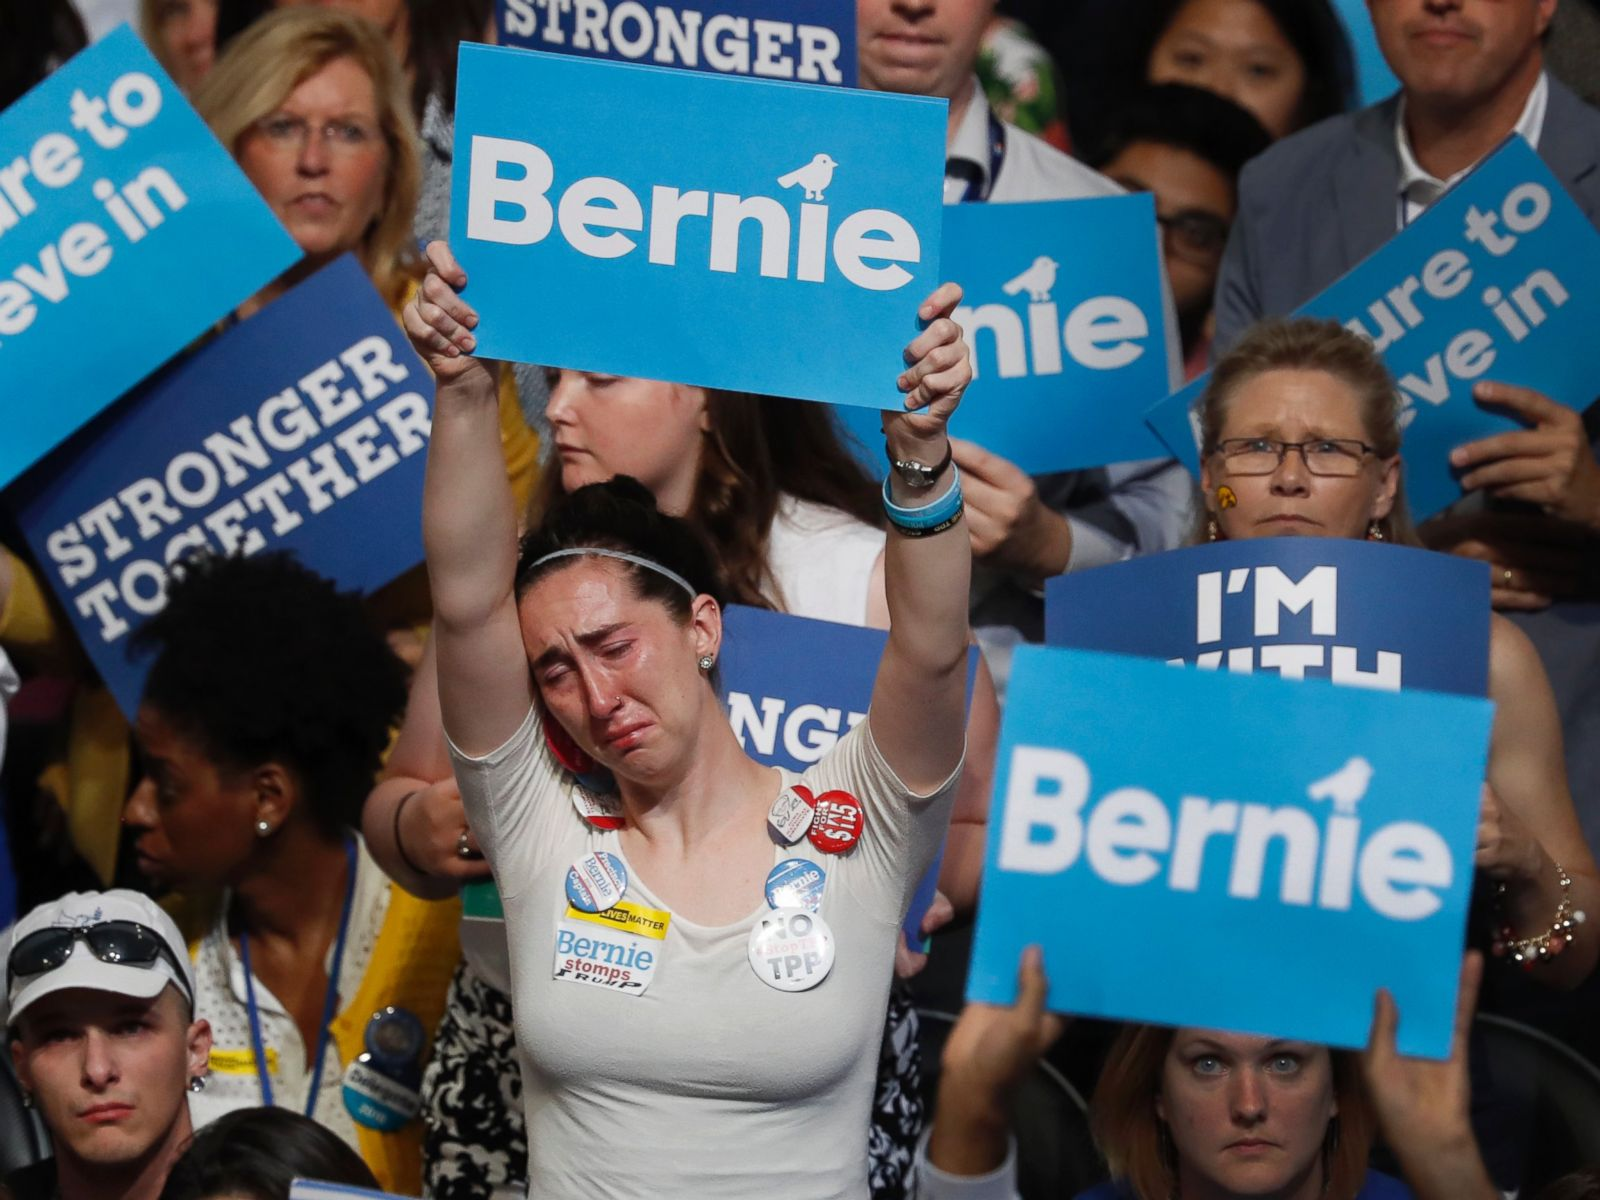 PHOTO: A disappointed supporter for Former Democratic presidential candidate, Sen. Bernie Sanders, holds up her sign during the first day of the Democratic National Convention in Philadelphia , July 25, 2016.